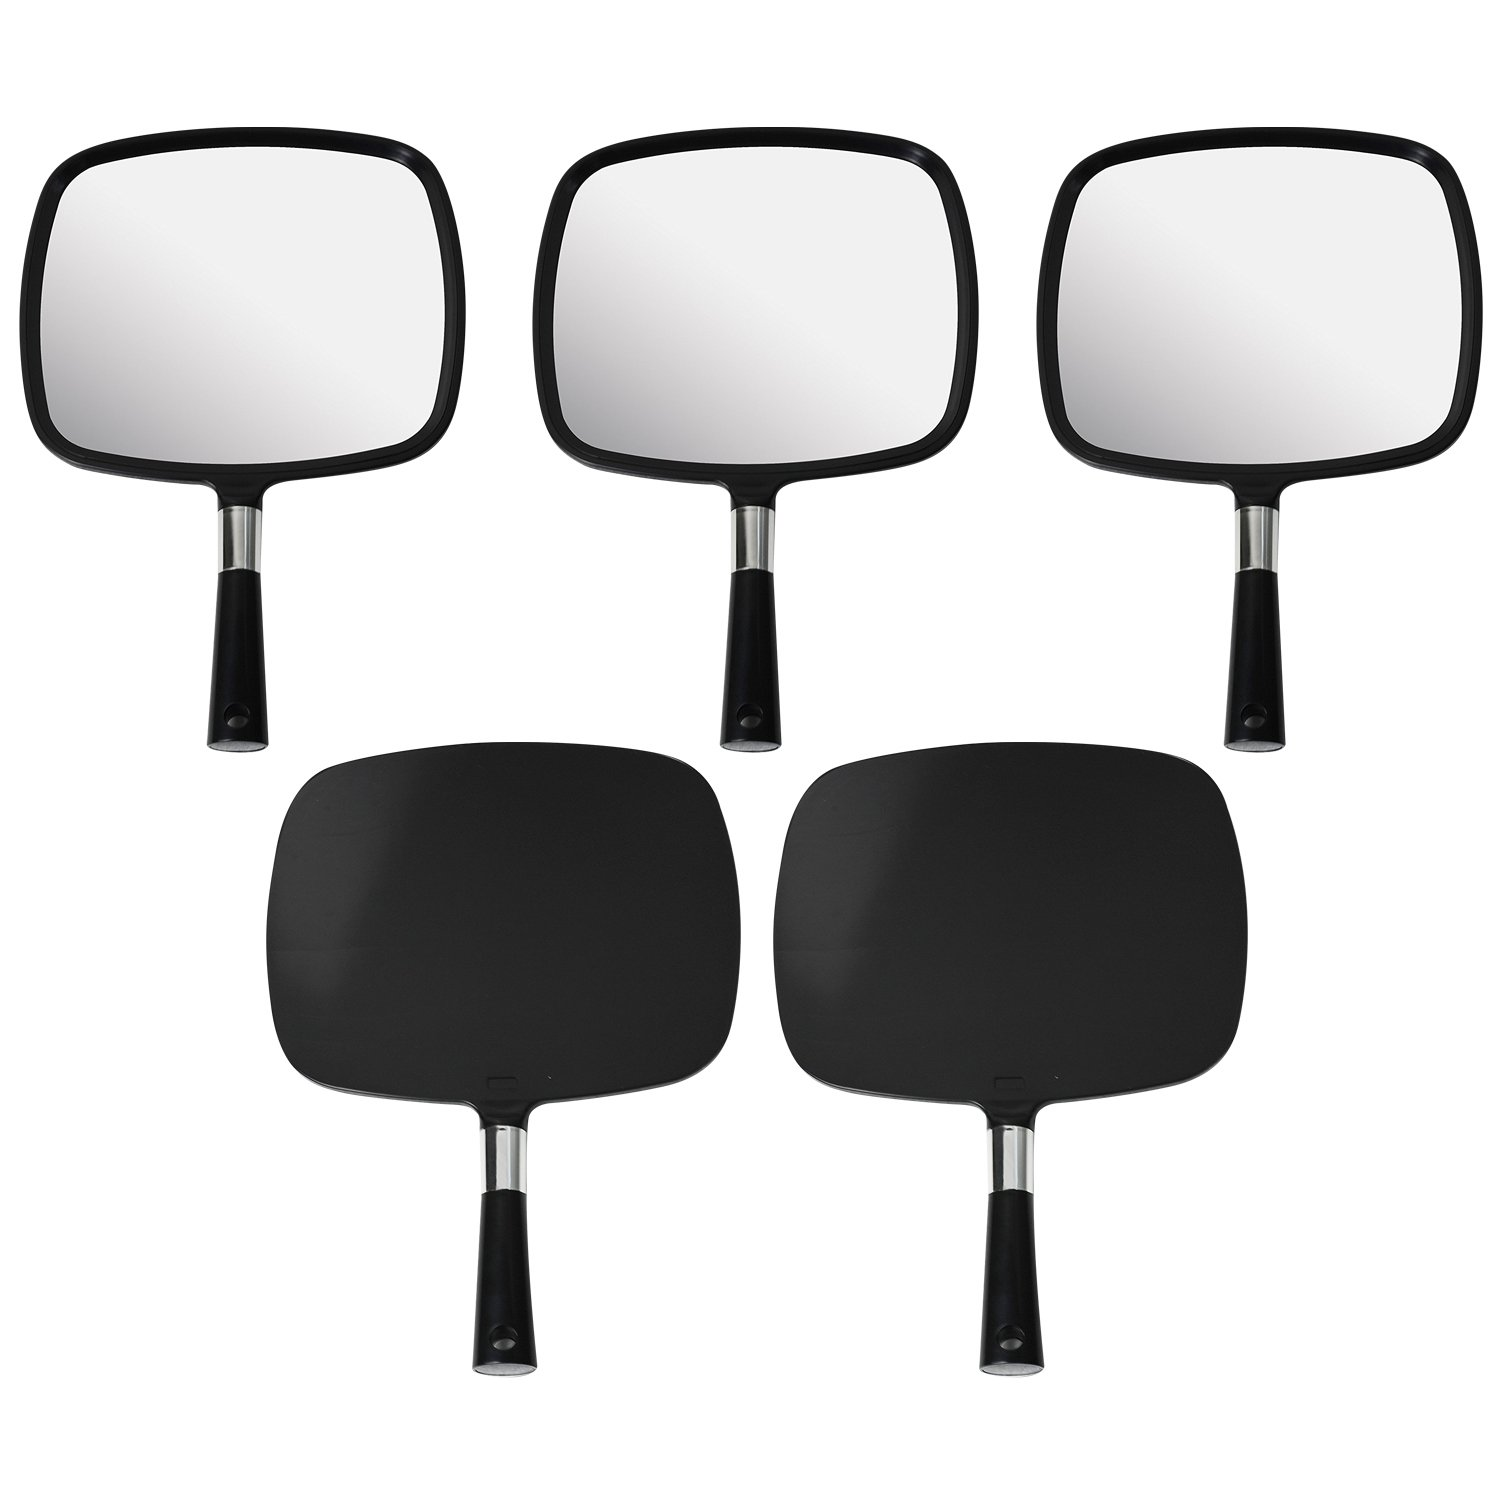 Mirrorvana Large & Comfy Hand Held Mirror (Black), Bulk Pack of 5 by Mirrorvana